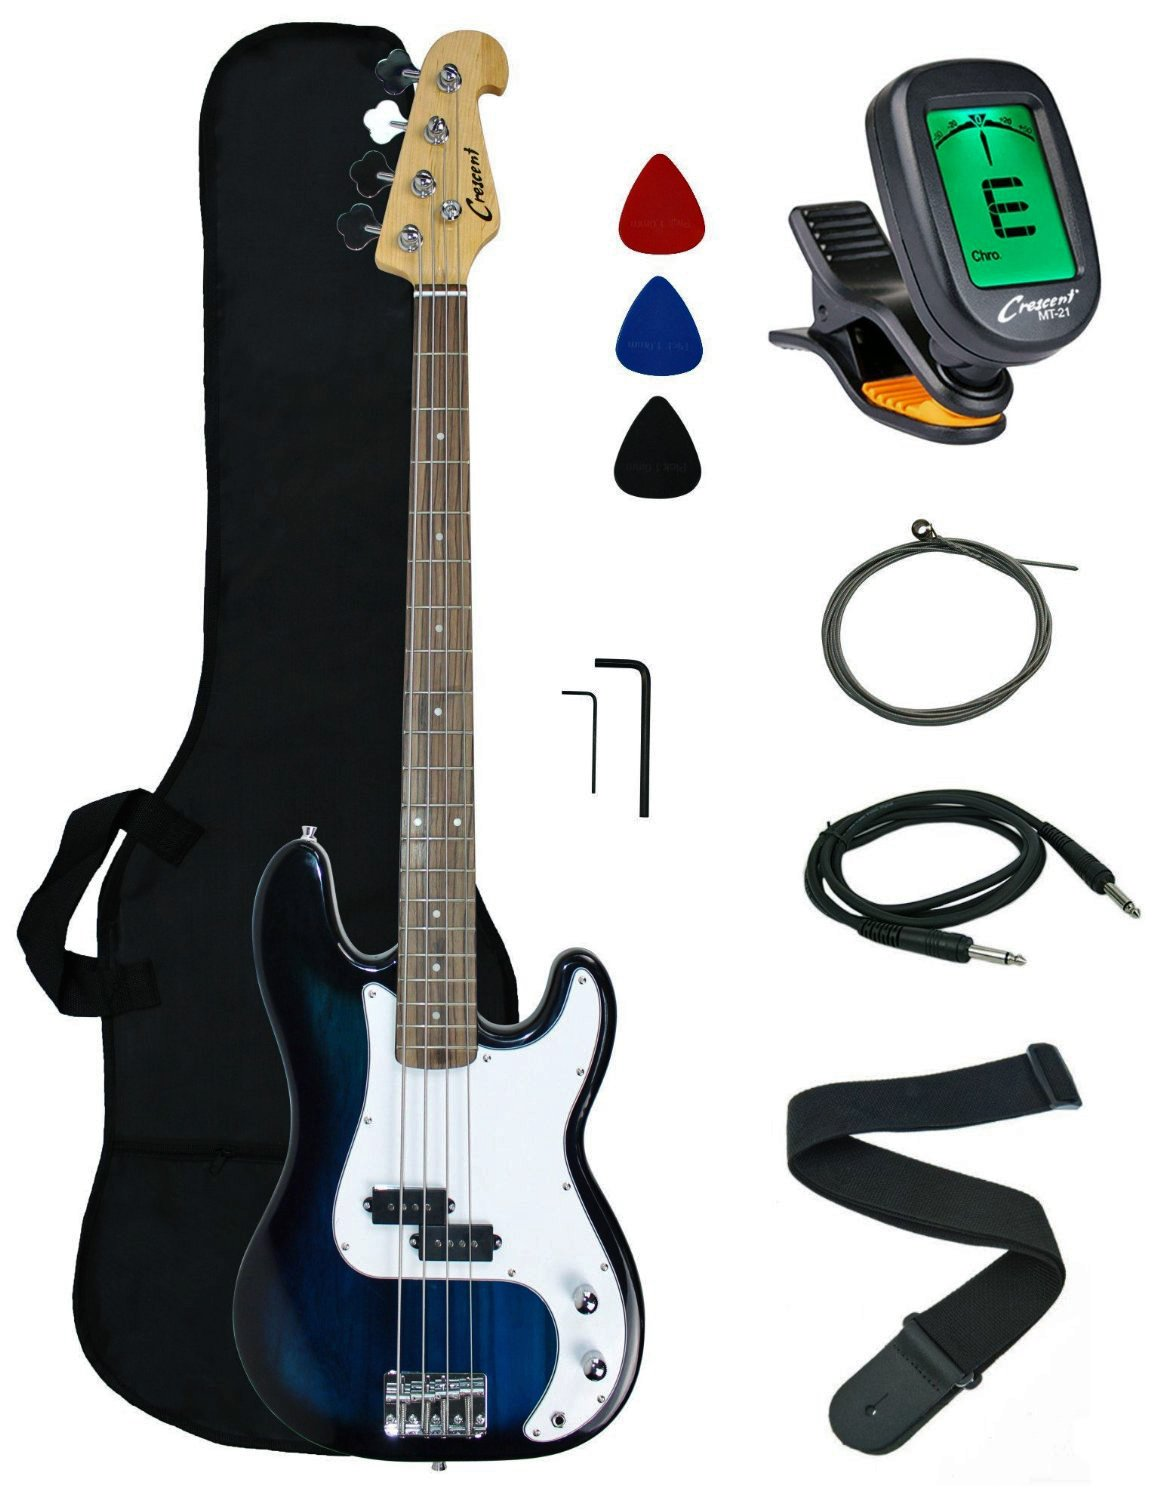 Crescent Electric Bass Guitar Starter Kit - Sunburst Color (Includes CrescentTM Digital E-Tuner) Other EB-SB-Tuner-Picholder-Pics